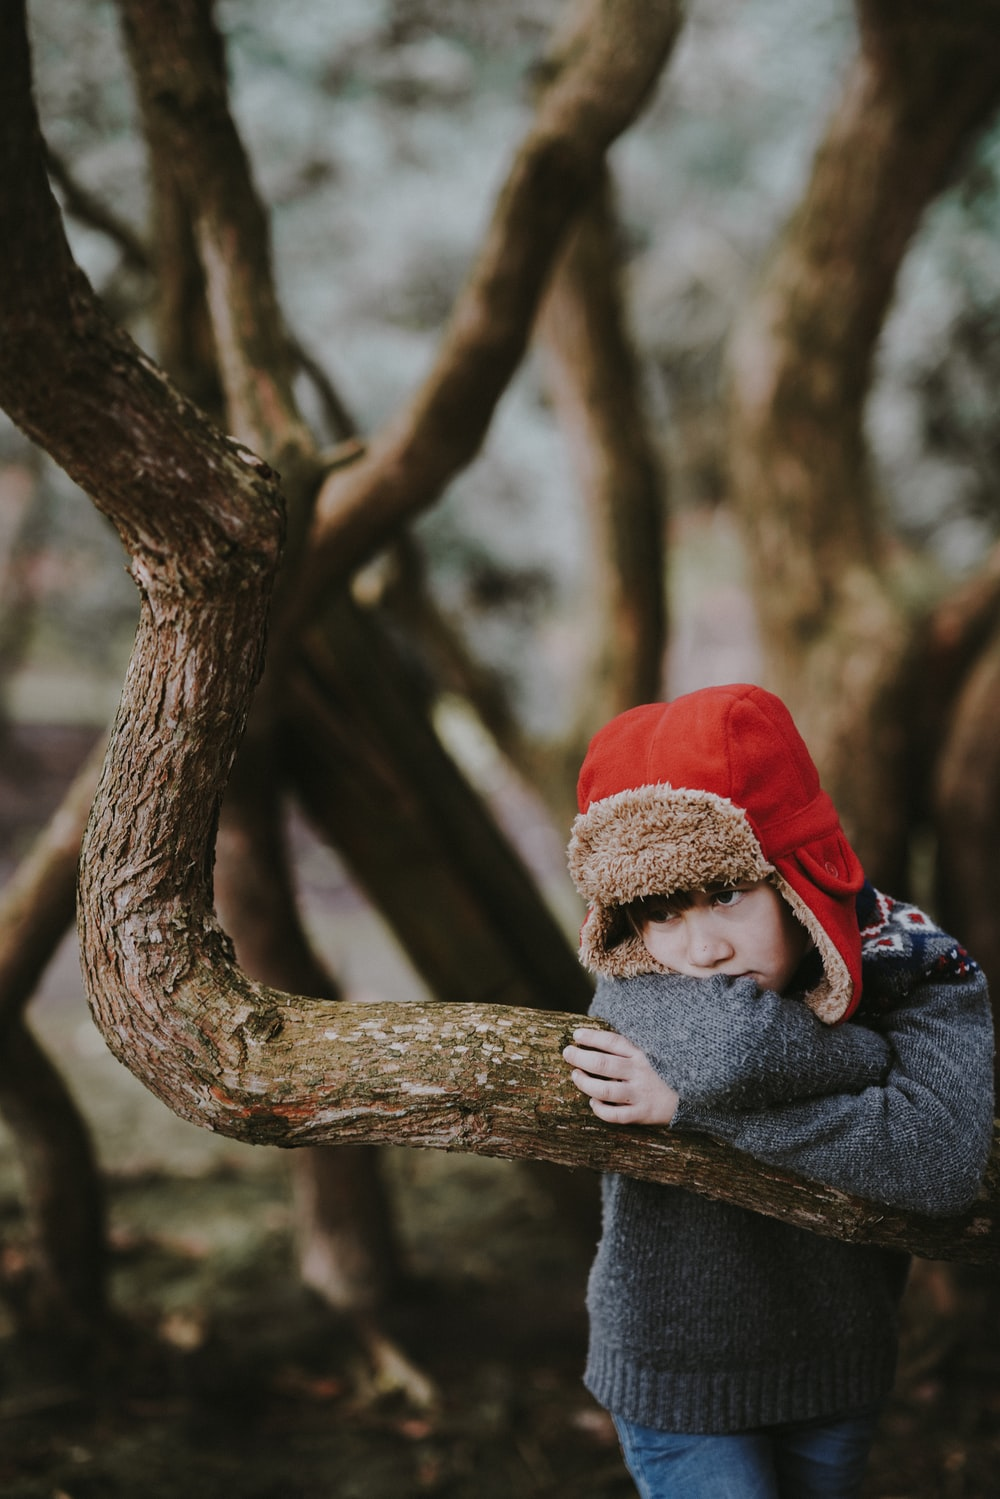 low light photography of boy in red ushanka hat learning on tree branch